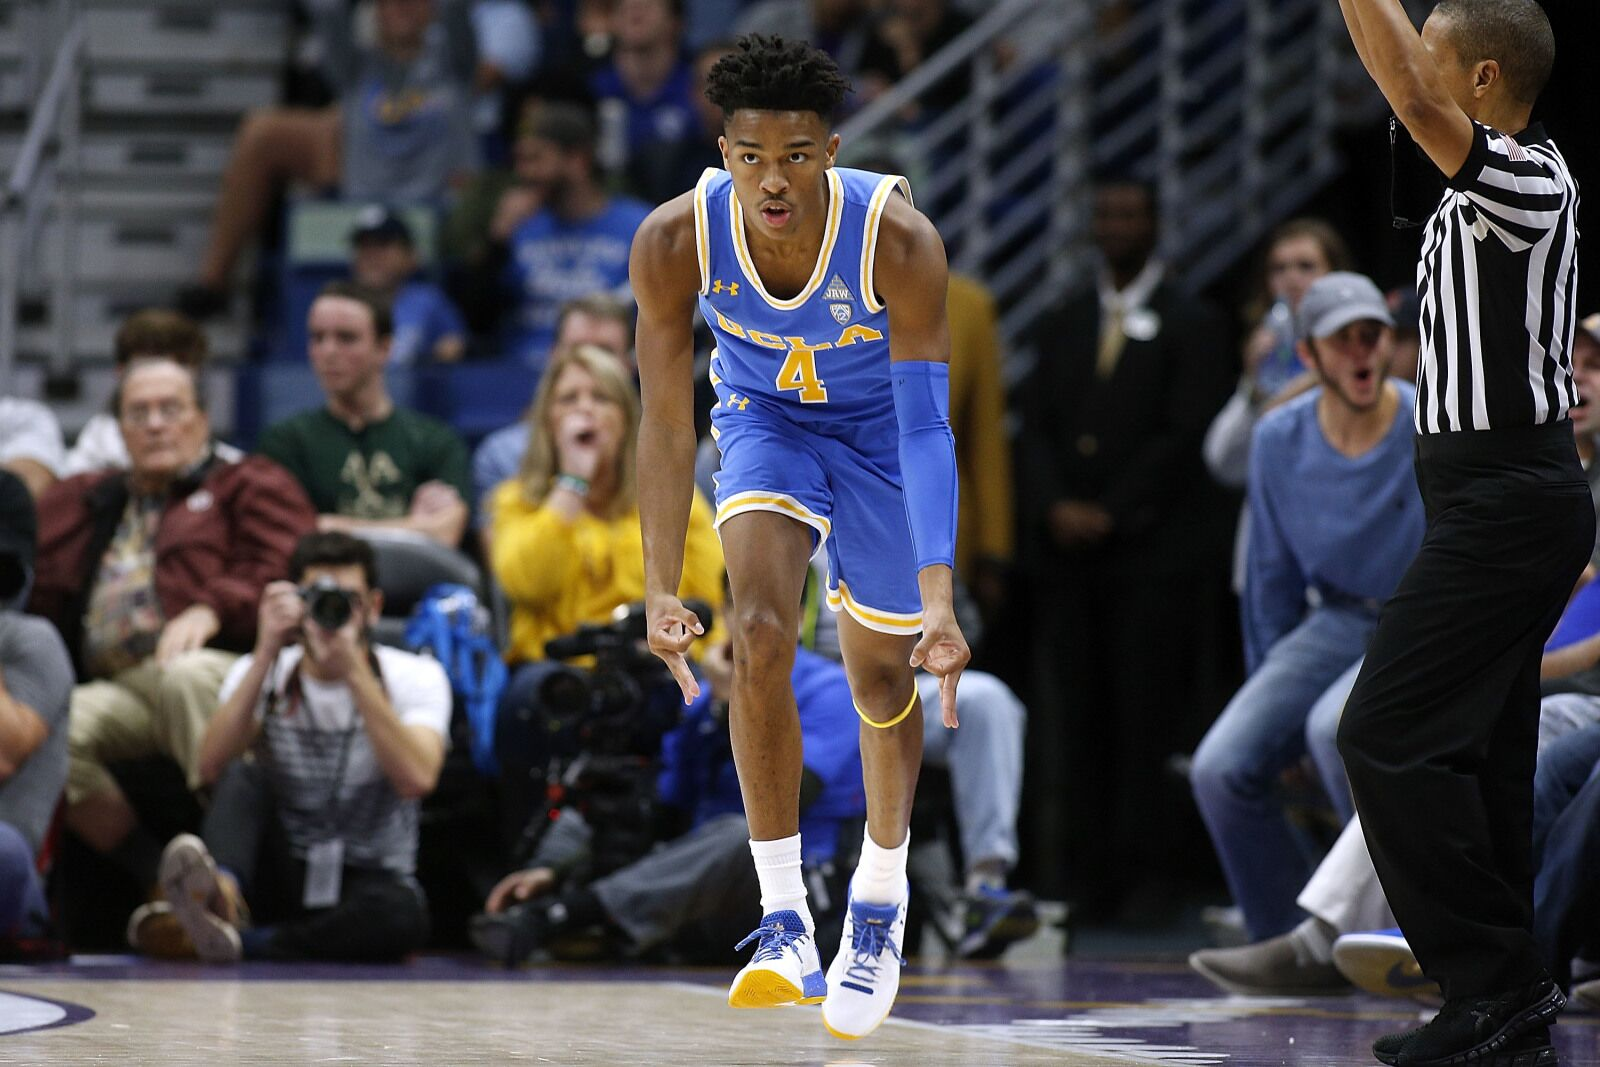 f41e6ded8 UCLA Basketball: Can the Bruins make a run for the 2018-19 Pac-12 title?